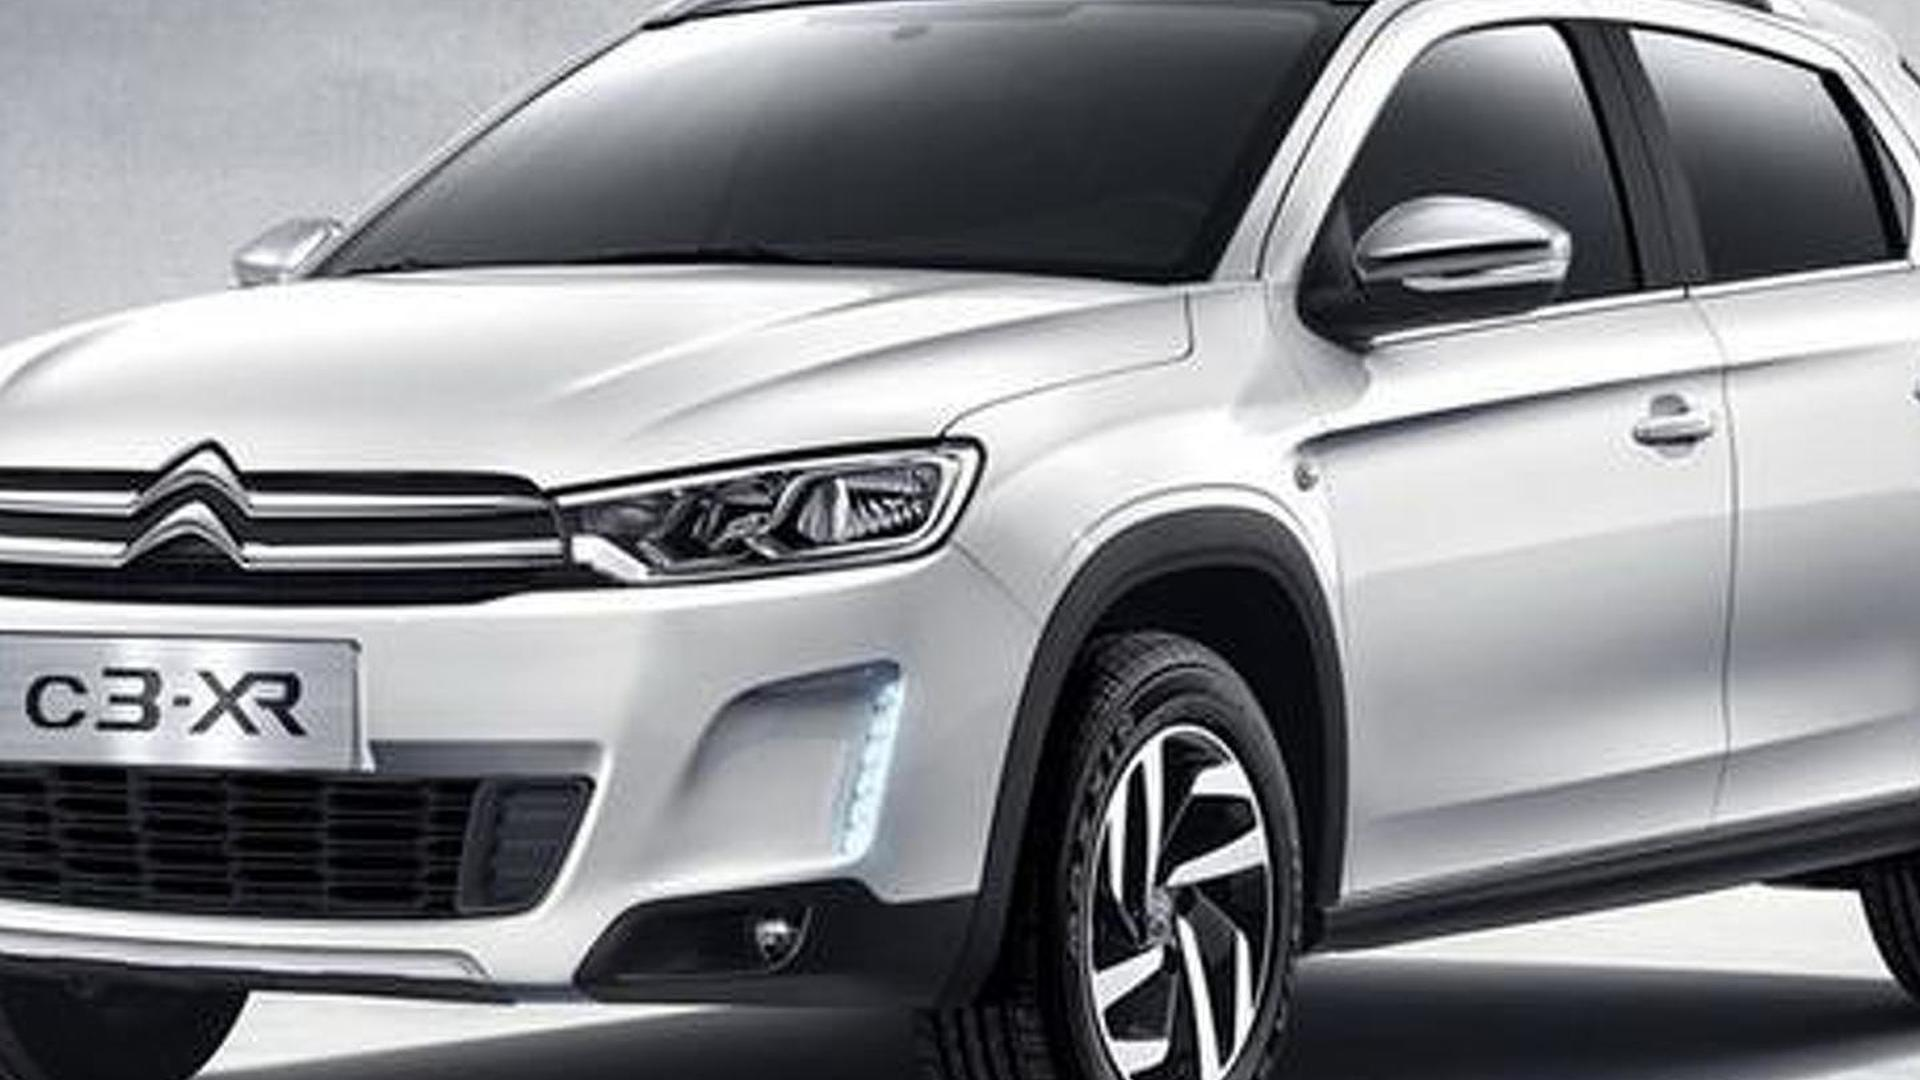 Citroen C3-XR first official pictures released ahead of November debut